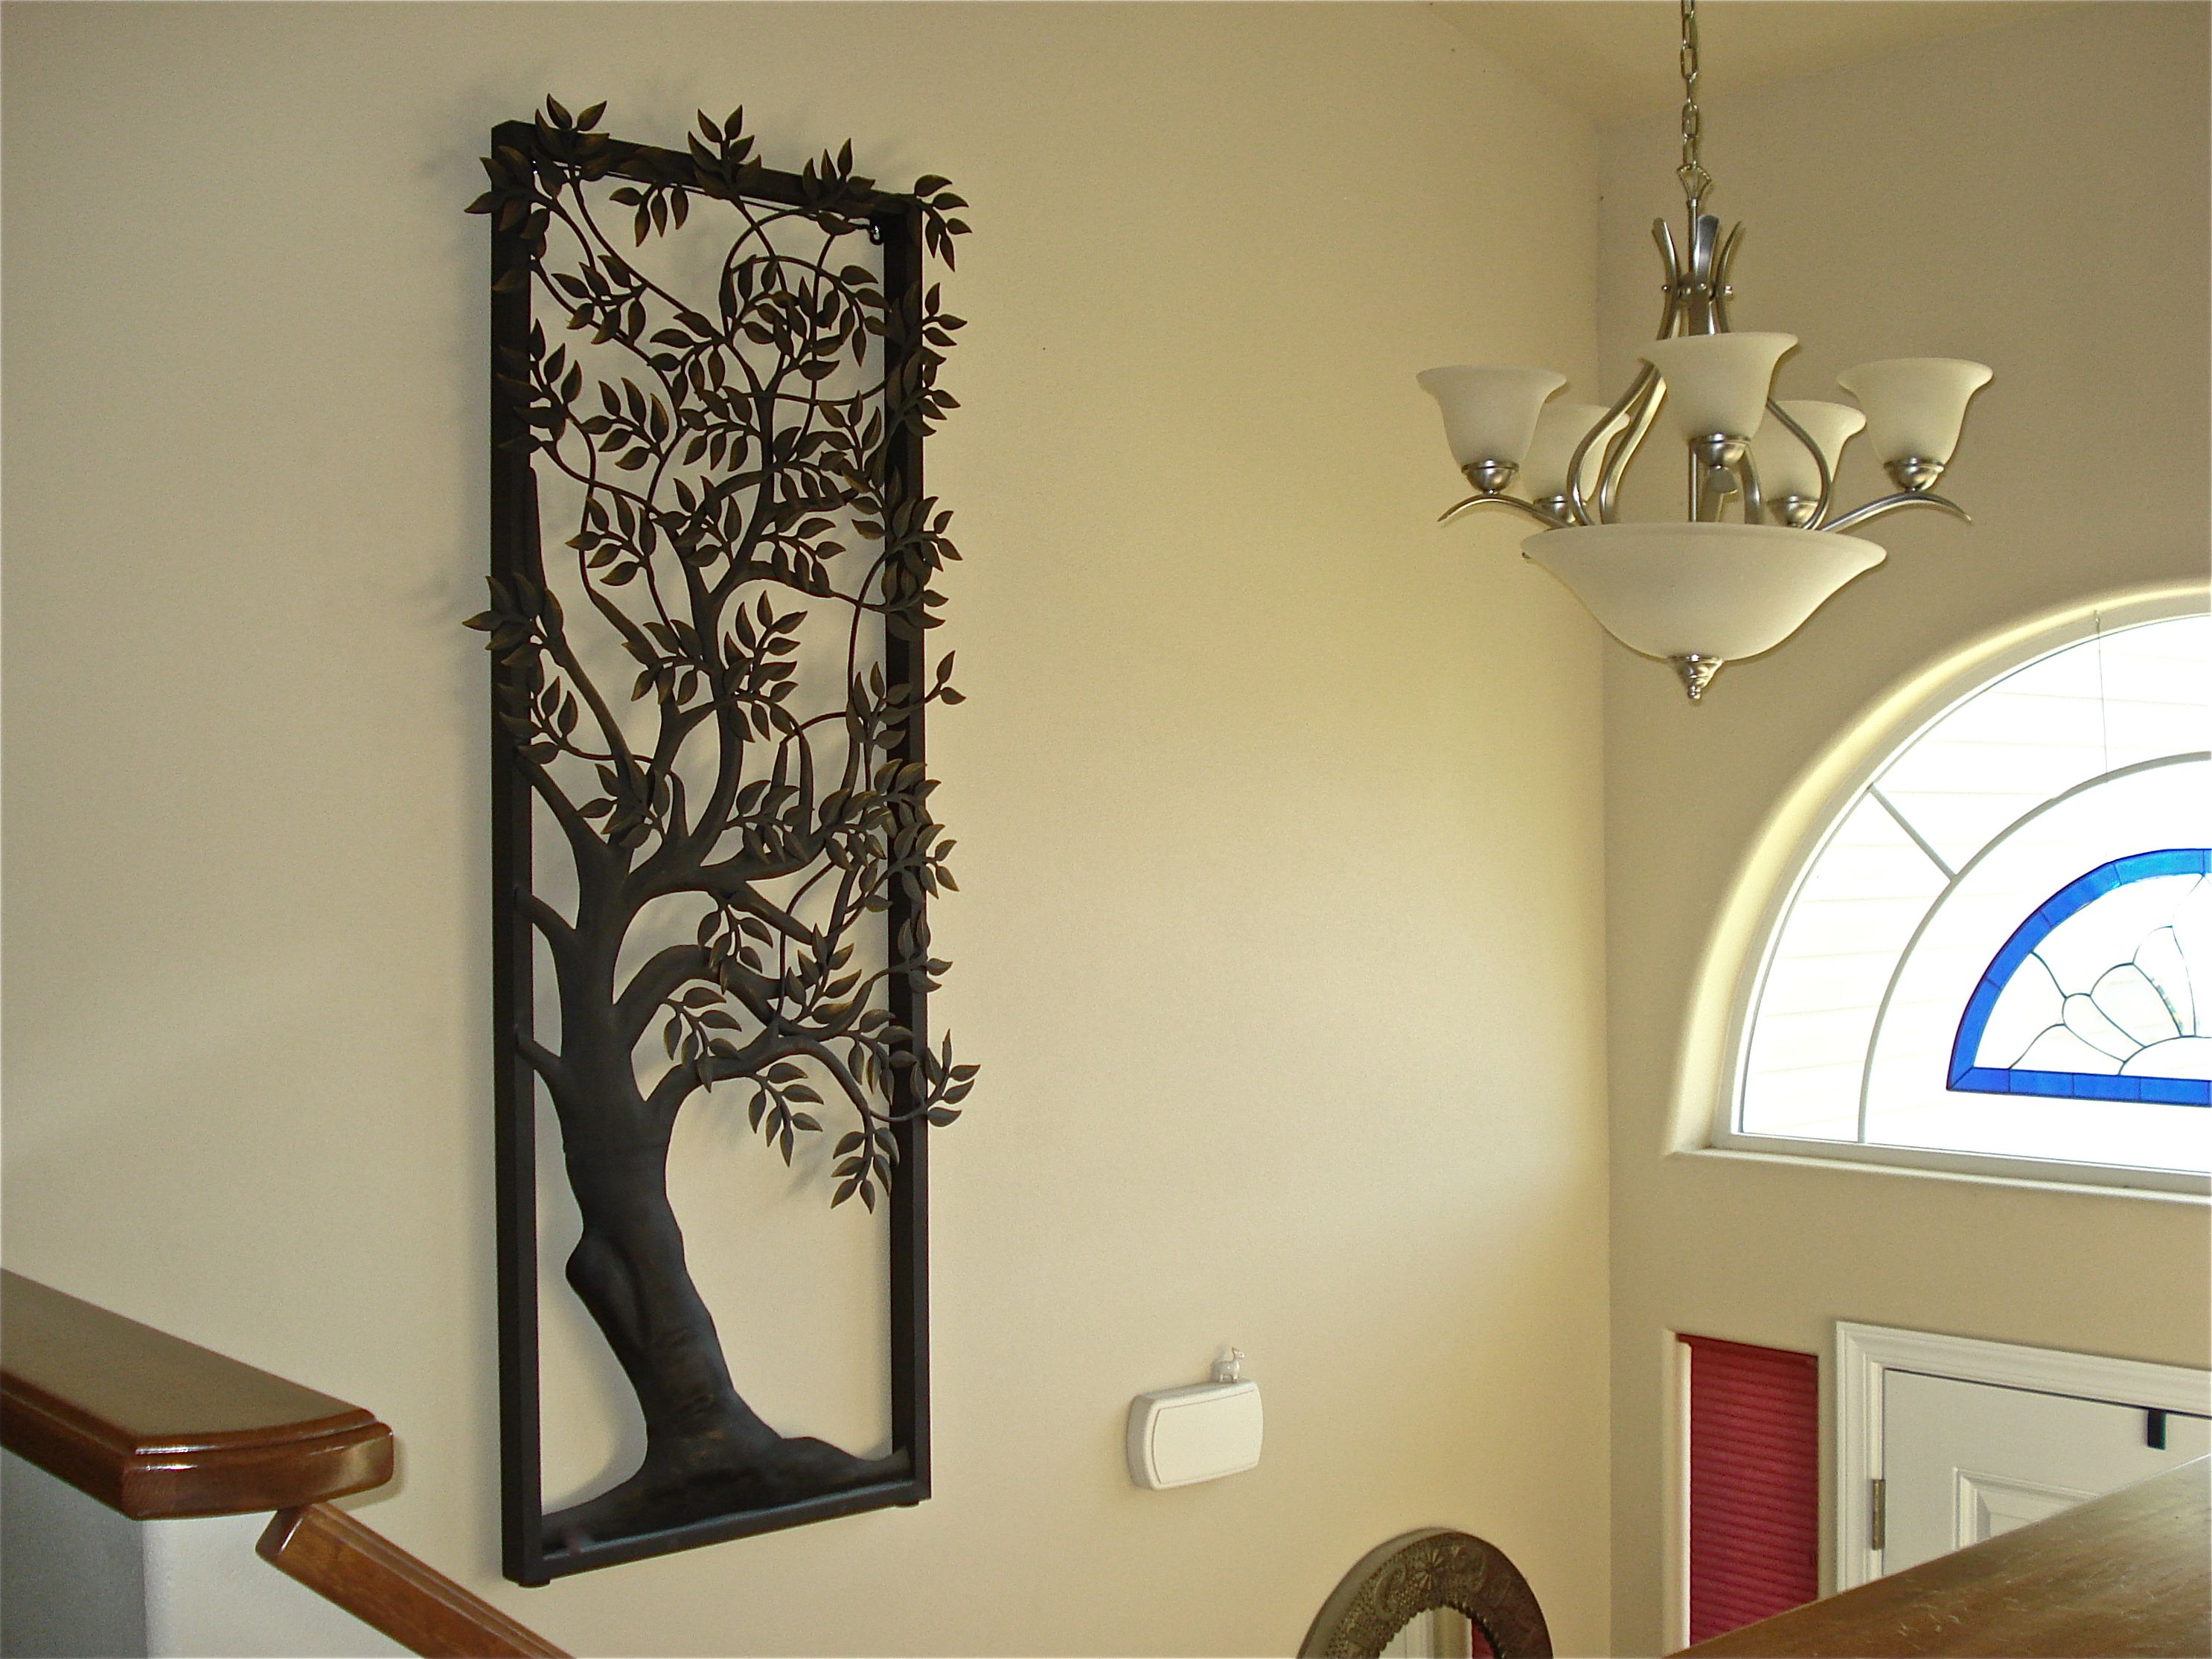 pier 1 large metal tree art over entry staircase pier 1 goodies in my home metal tree. Black Bedroom Furniture Sets. Home Design Ideas